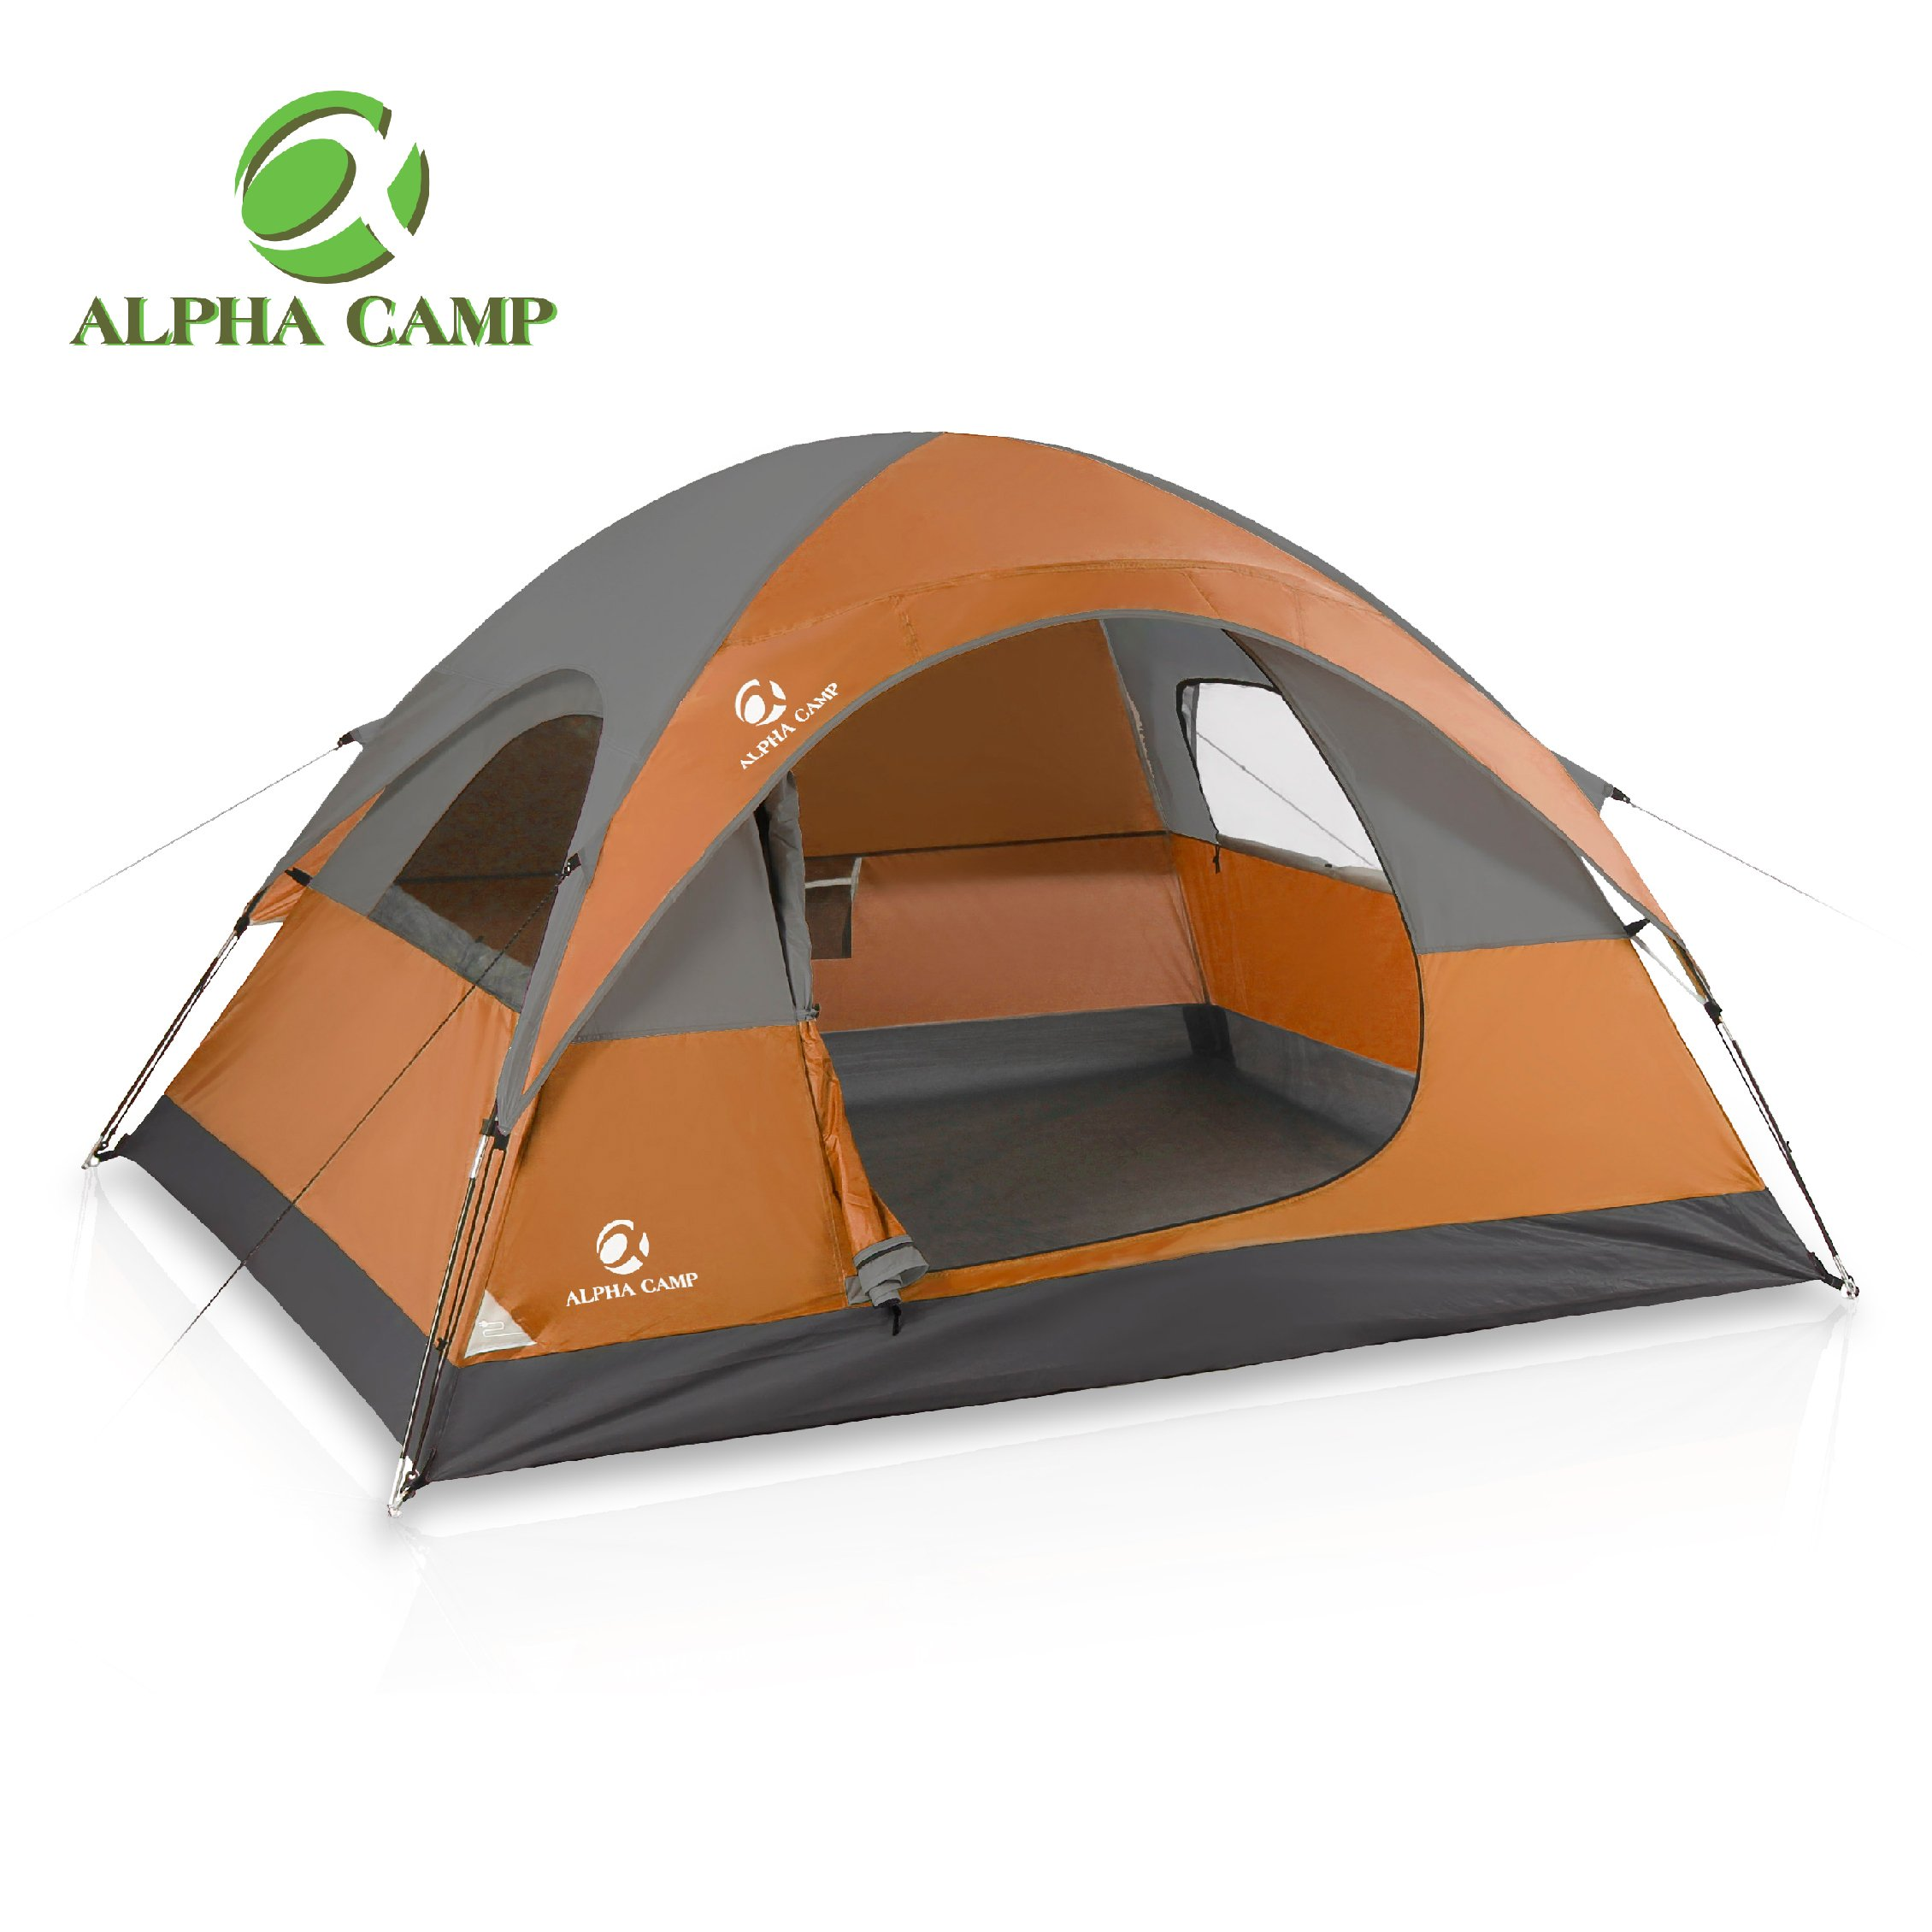 ALPHA CAMP 3 Person Camping Tent - 7' x 8' Orange by ALPHA CAMP